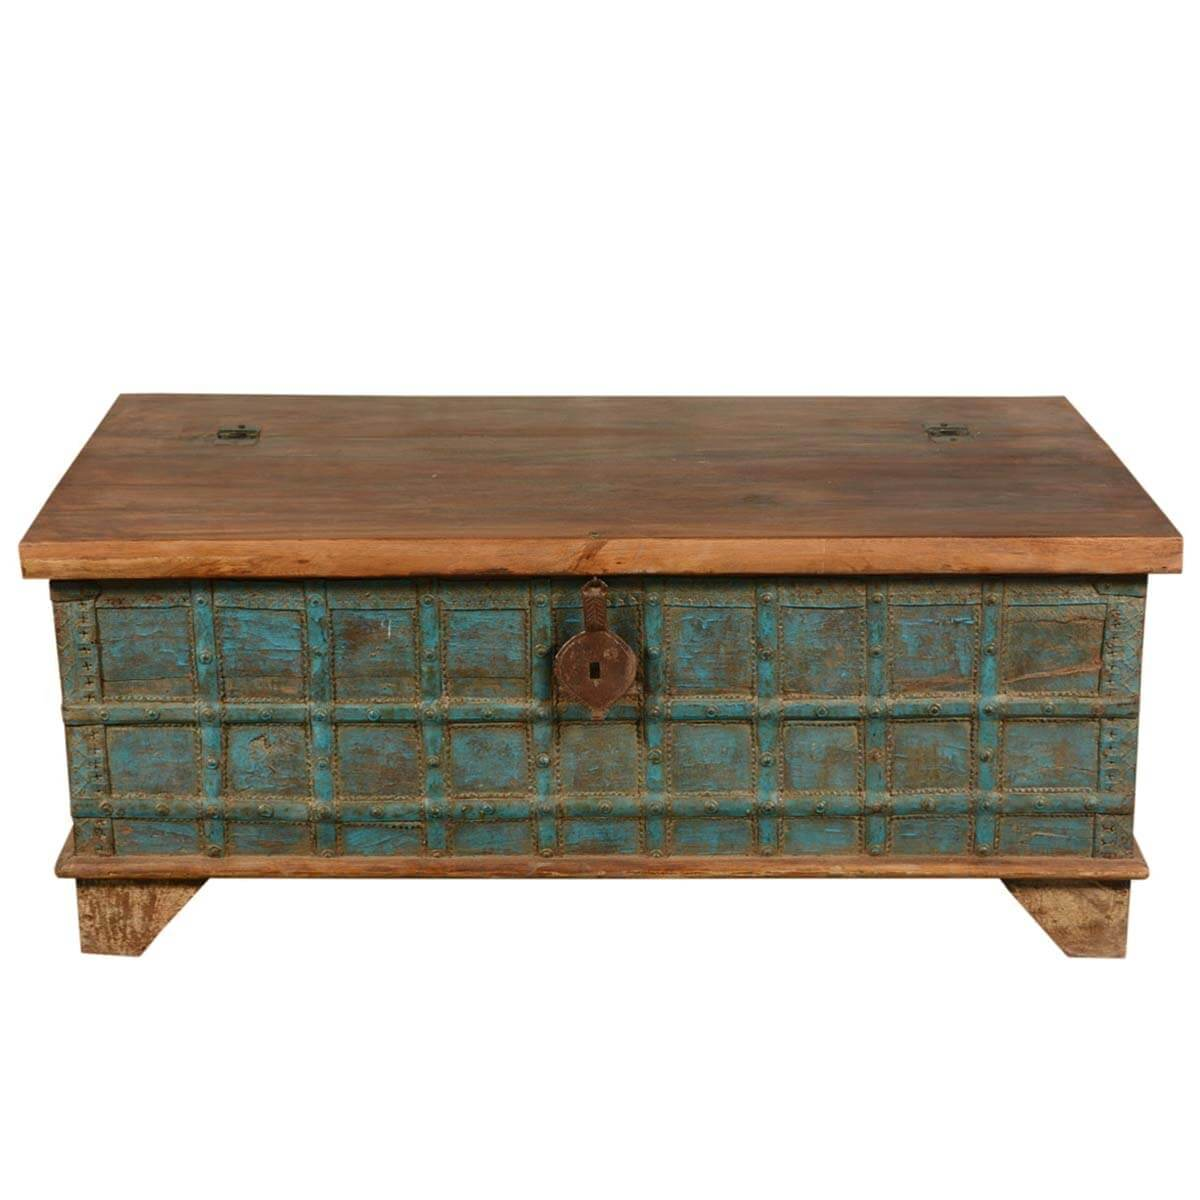 Emerald captain 39 s stash reclaimed wood coffee table storage chest Coffee table chest with storage